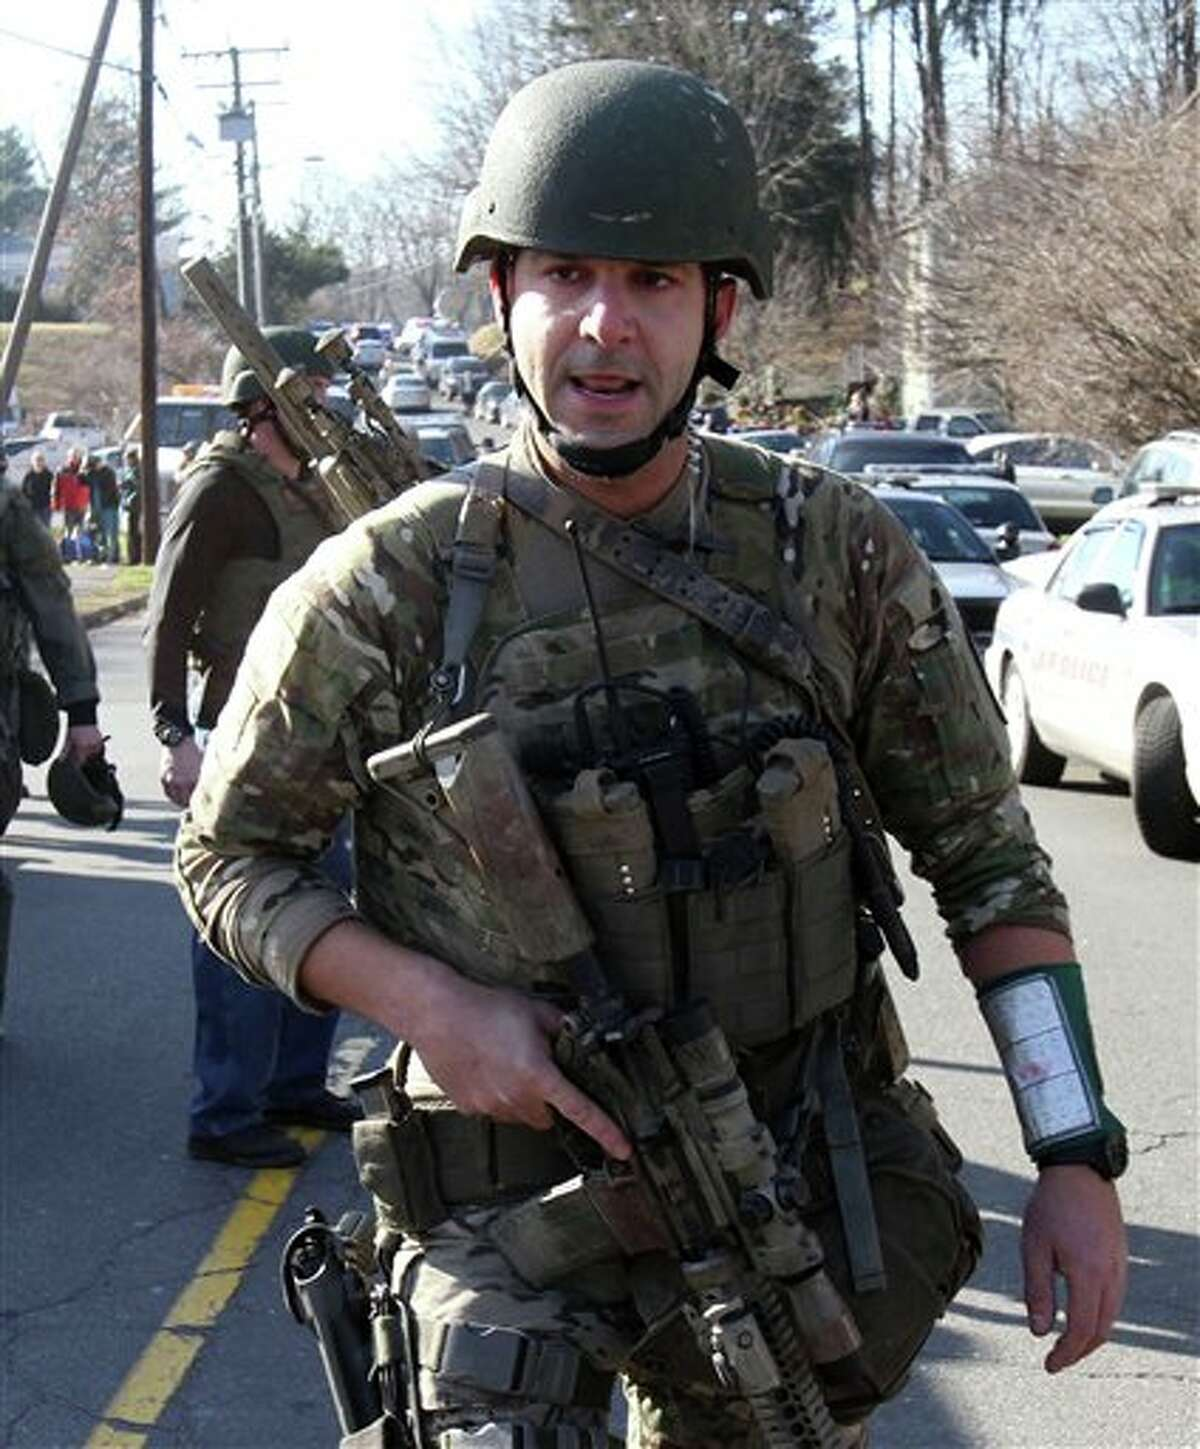 Heavily armed Connecticut State troopers are on the scene at the Sandy Hook School where authorities say a gunman opened fire, leaving 27 people dead, including 20 children, Friday, Dec. 14, 2012. (AP Photo/The Journal News, Frank Becerra Jr.) MANDATORY CREDIT, NYC OUT, NO SALES, TV OUT, NEWSDAY OUT; MAGS OUT